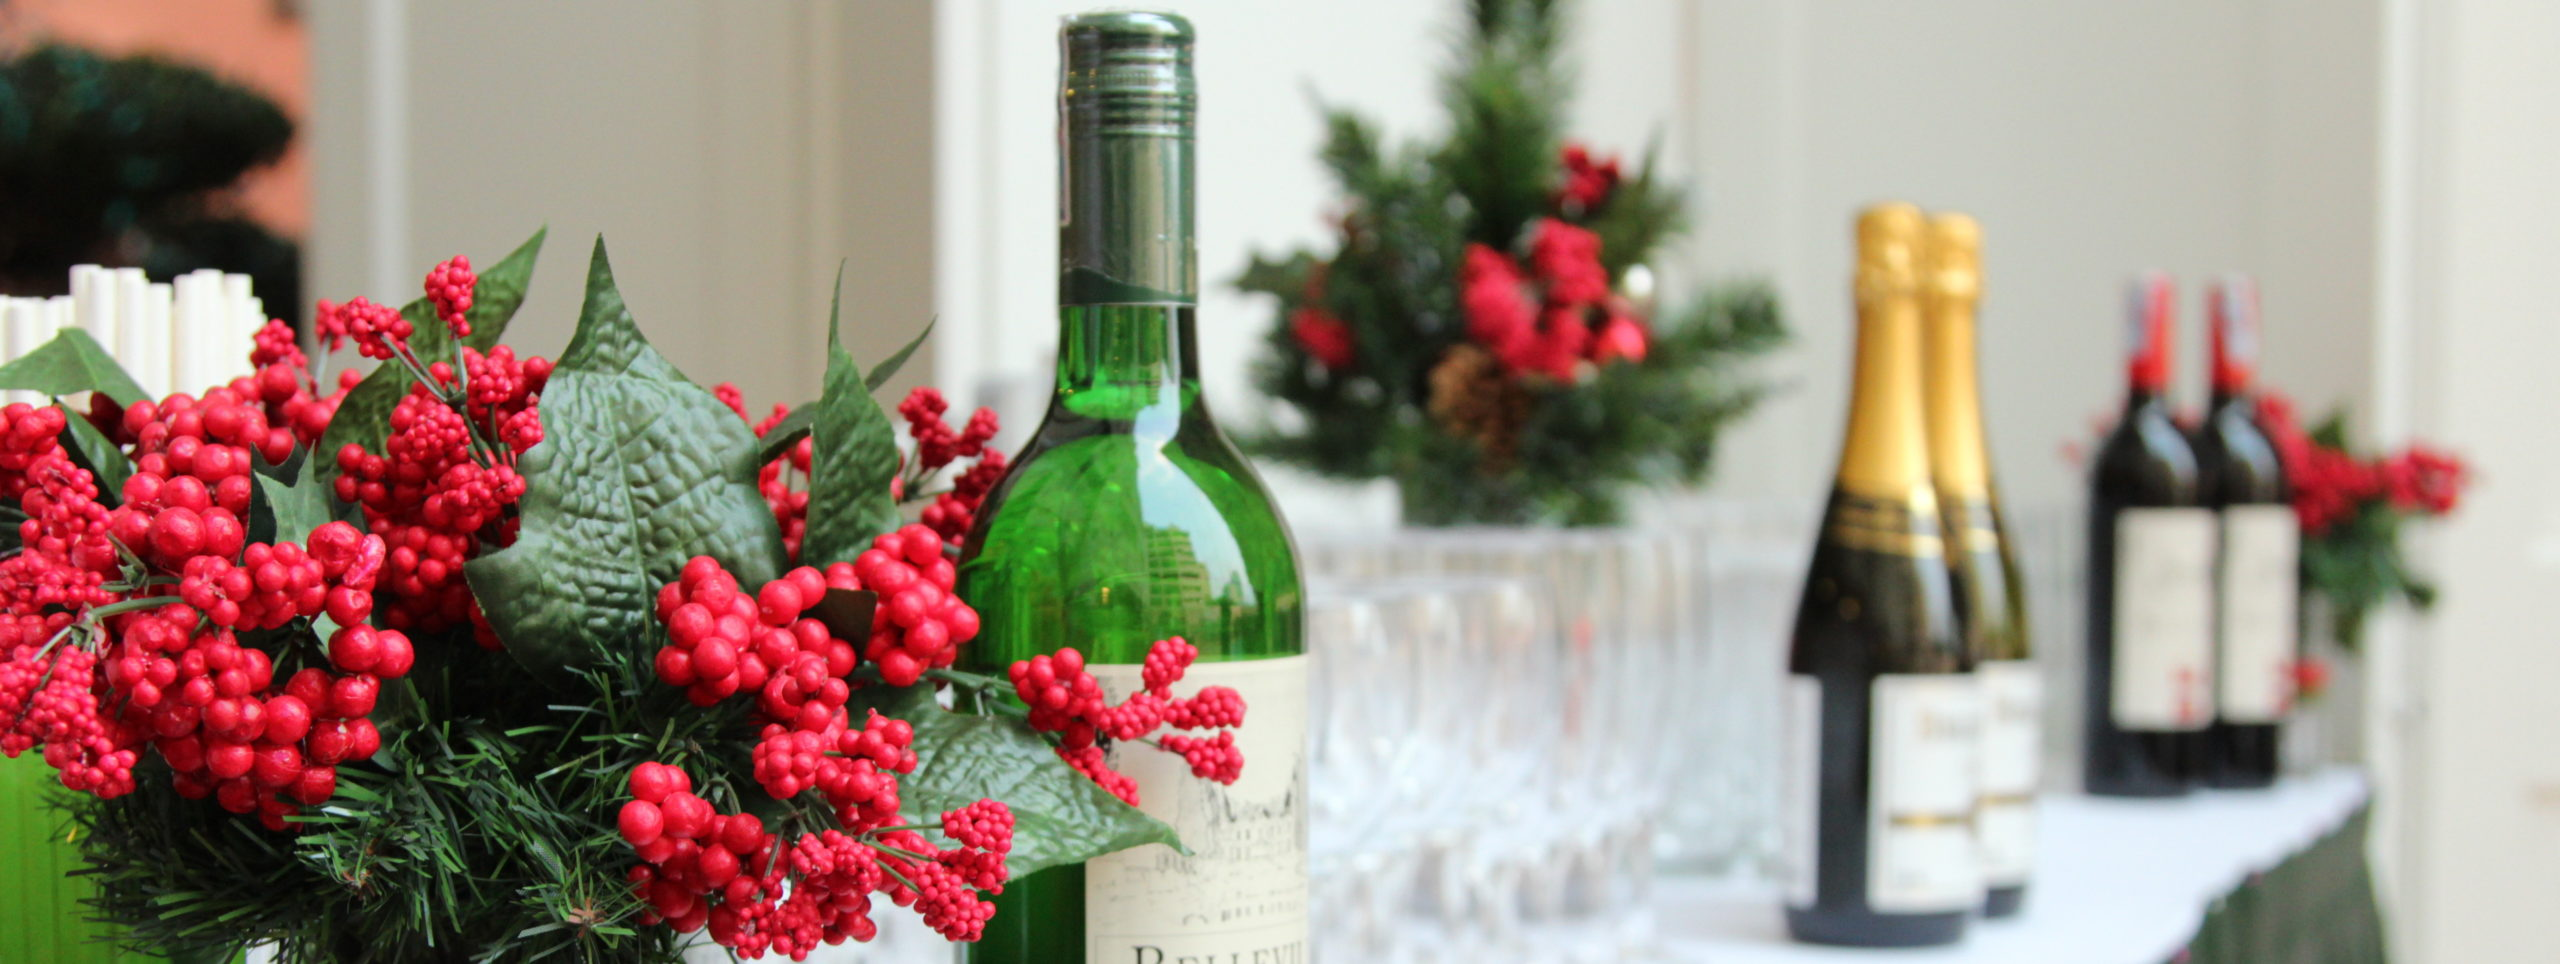 Norfolk Group welcomes Festive Season for a warm and homely winter.